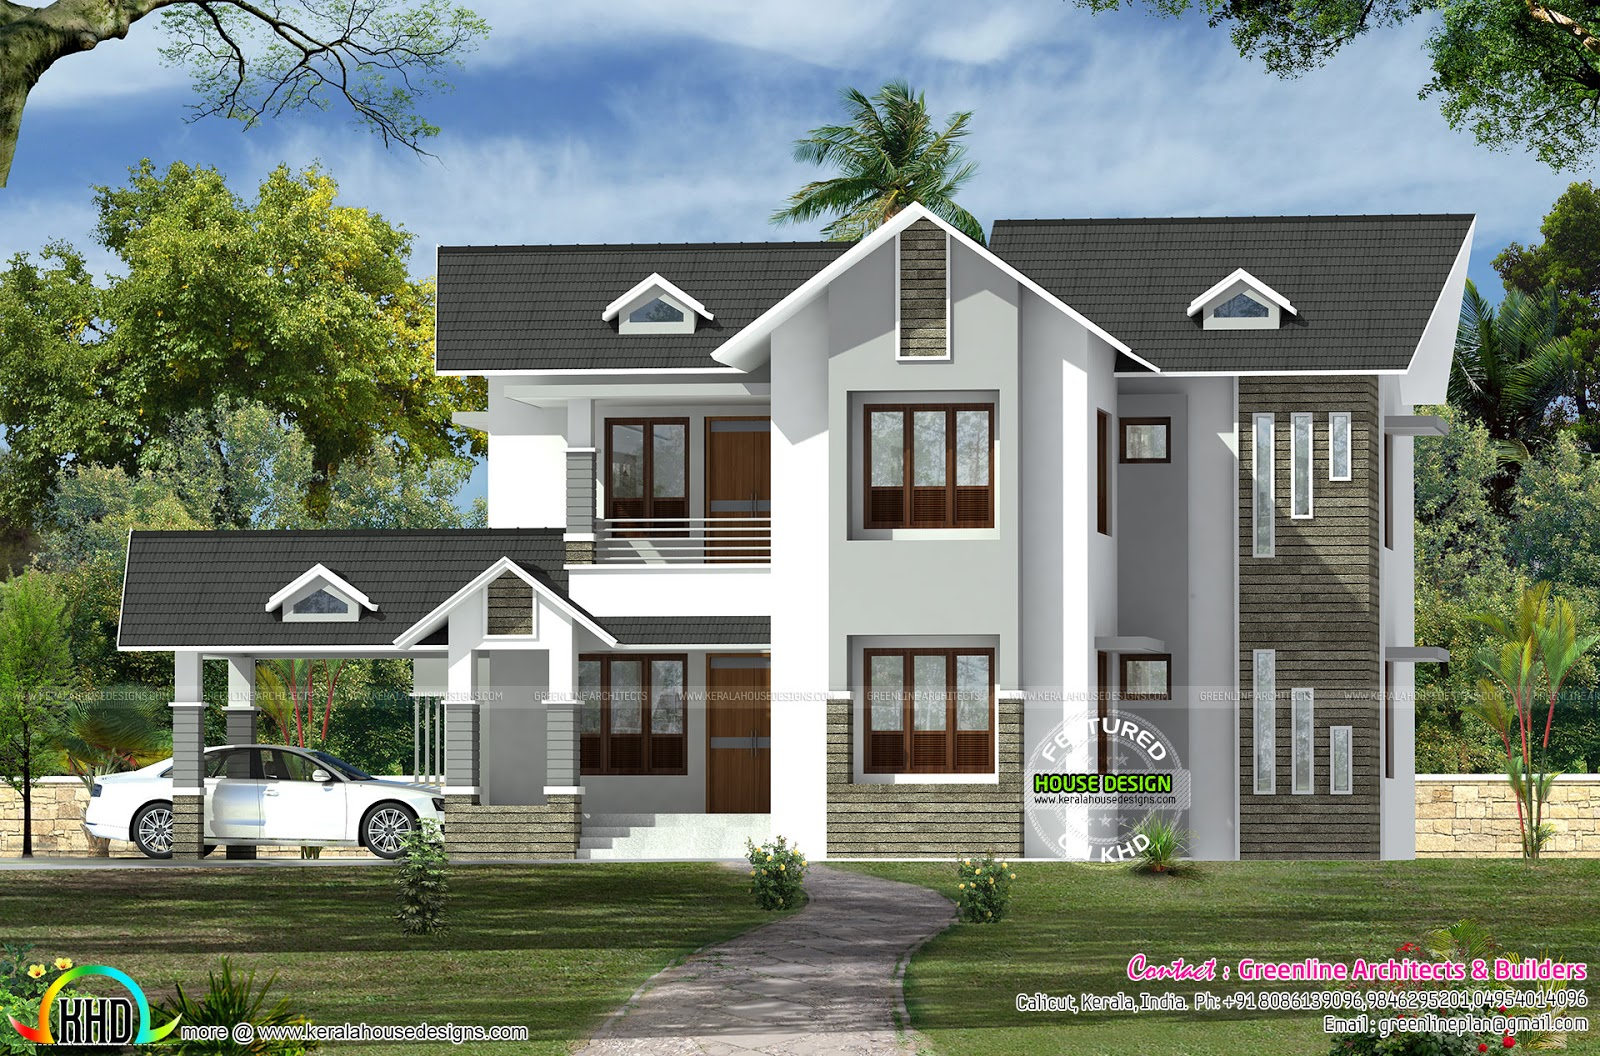 Modern Sloping Roof Dormer Window Home 3149 Sq Ft Kerala